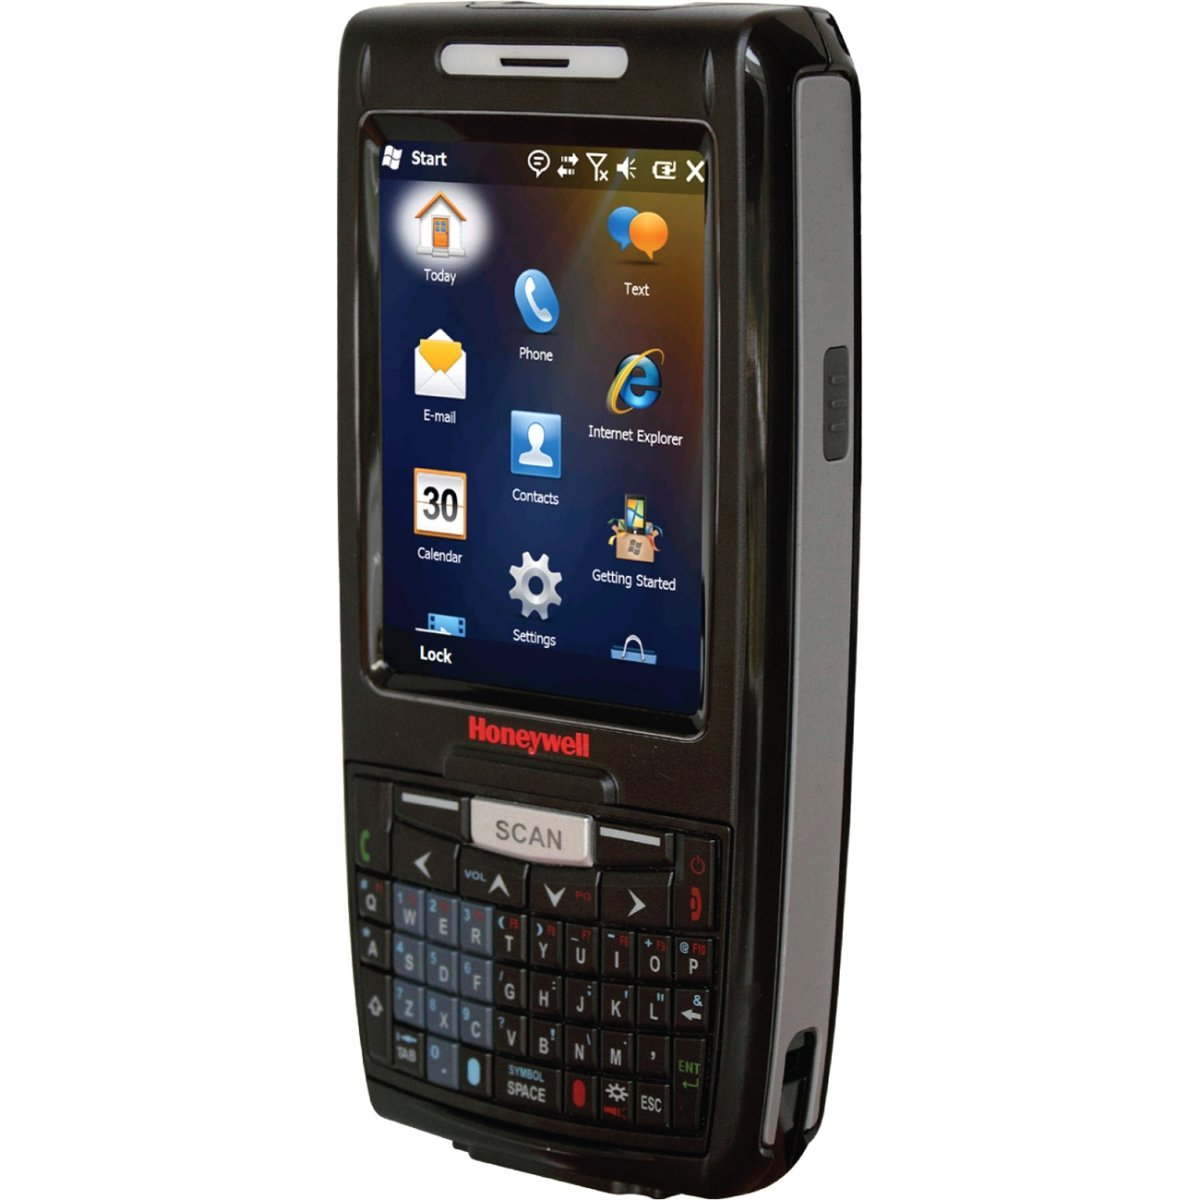 Honeywell 7800L0Q-0C211XE Dolphin 7800 Handheld Mobile Computer, Bluetooth, Standard Range Imager, QWERTY, Camera, Extended Battery, WW English